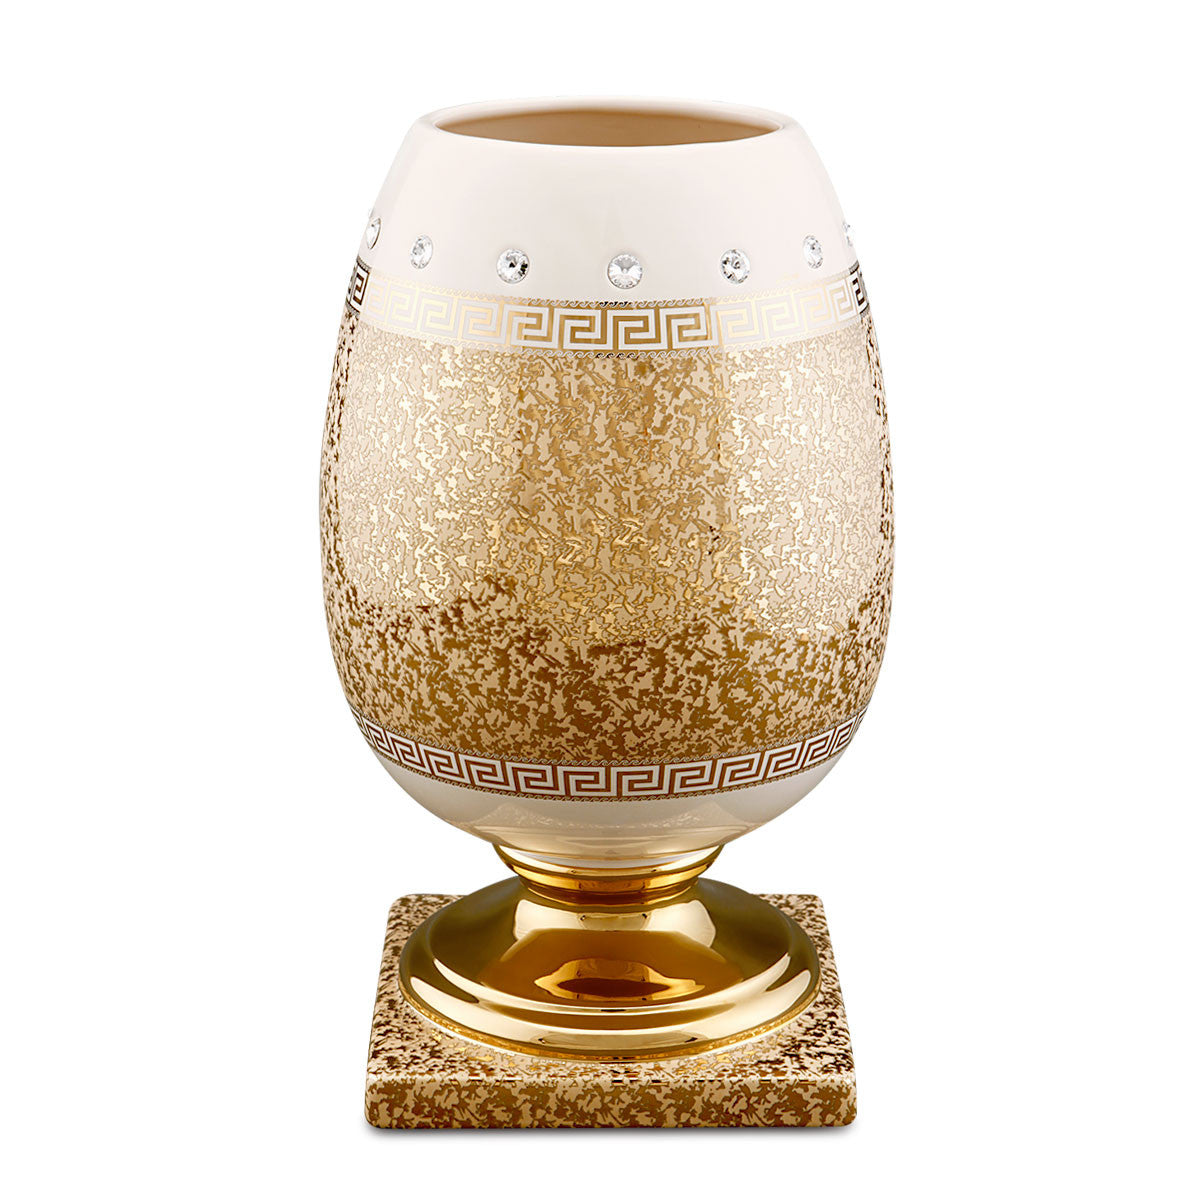 Ceramic egg vase with Swarovski crystal